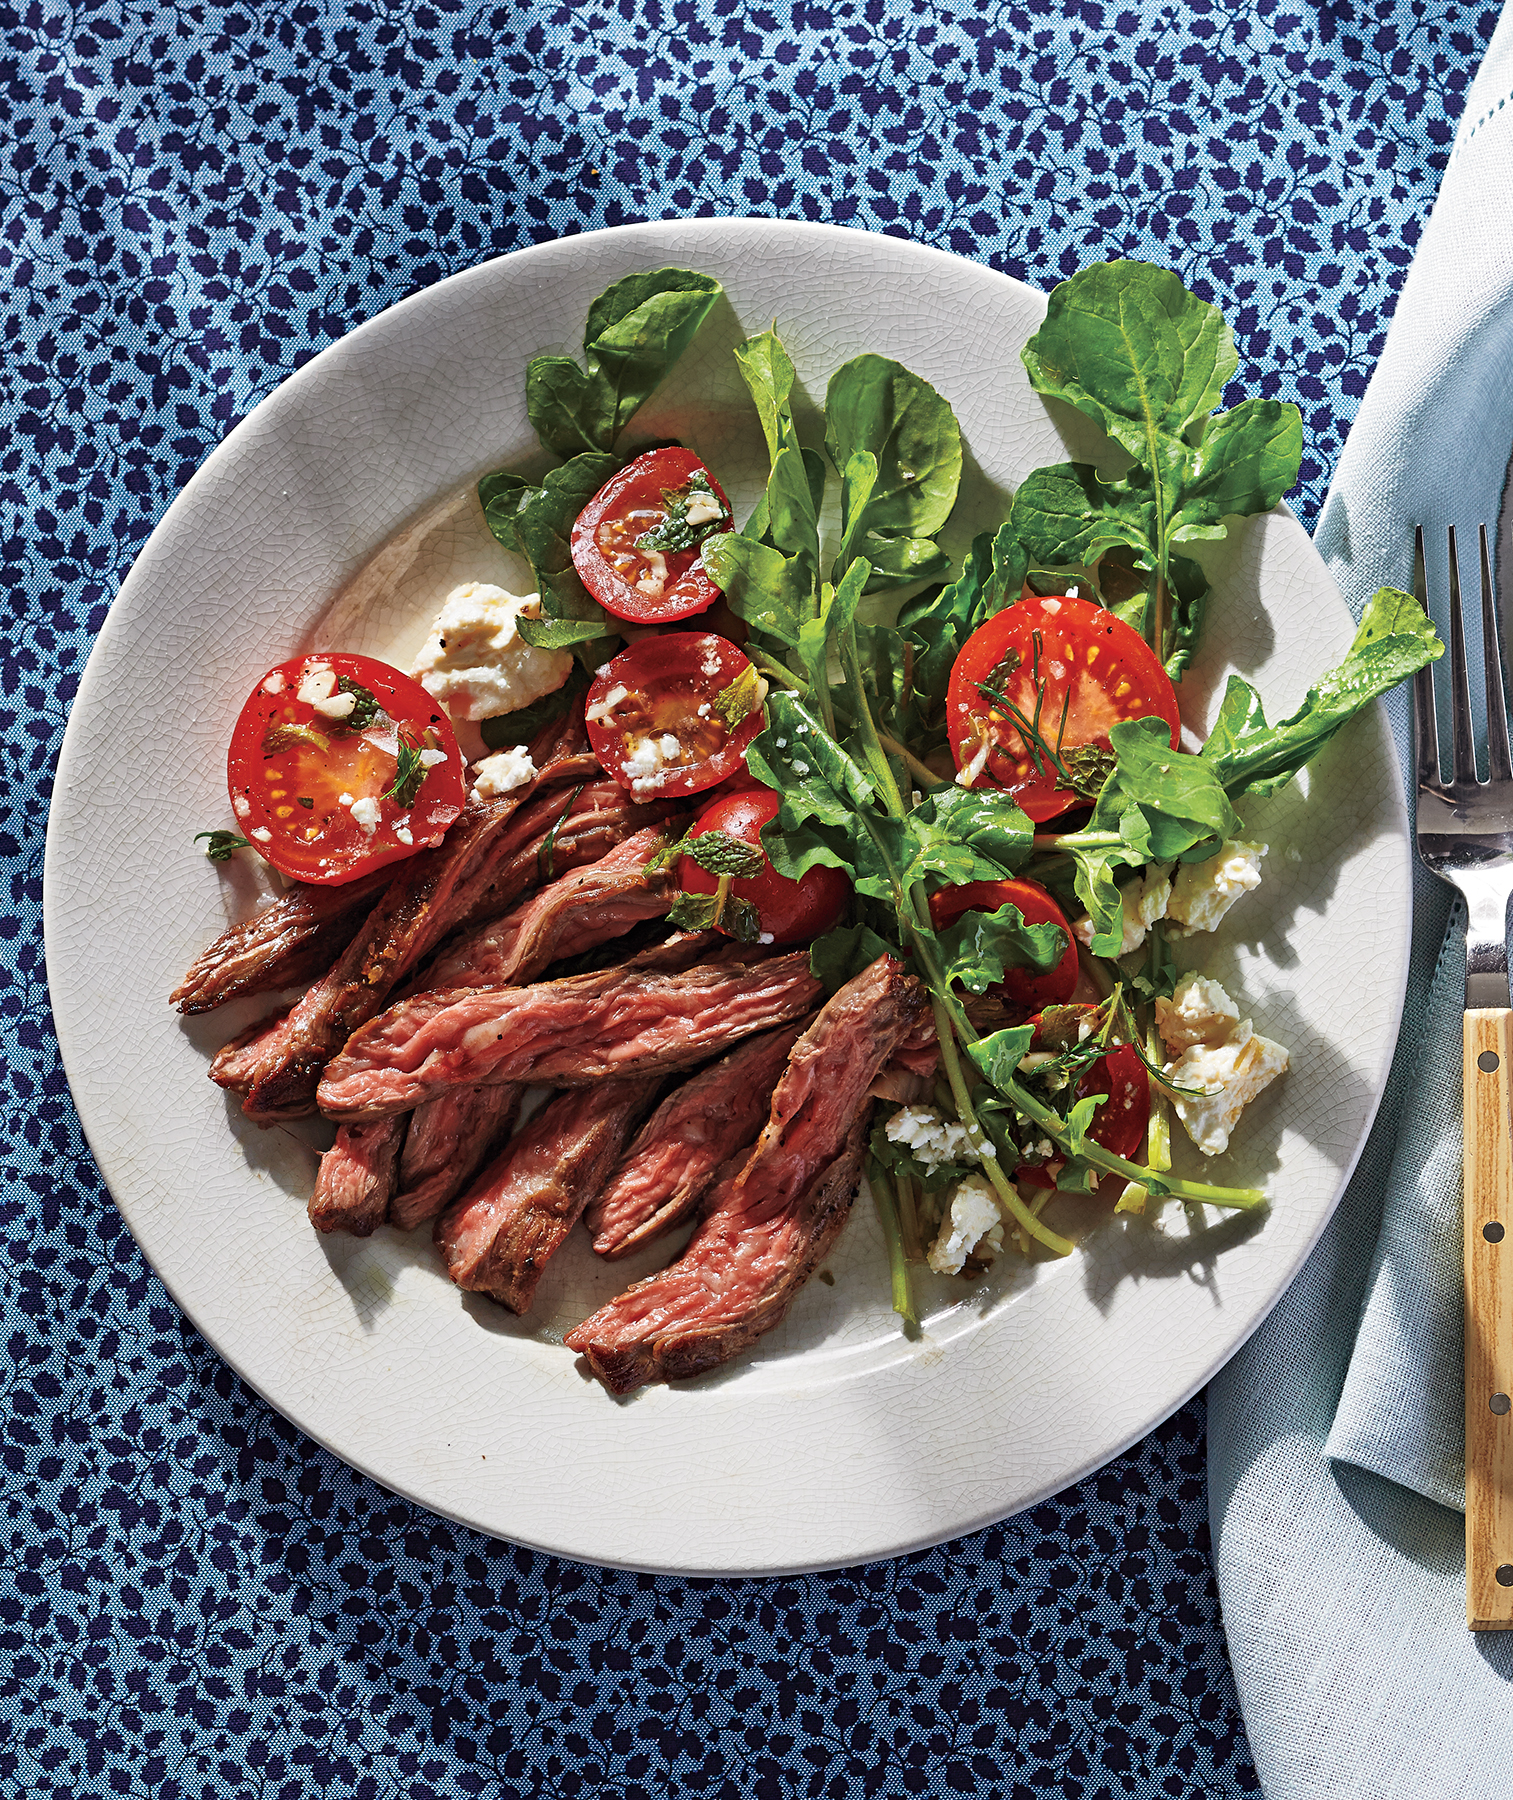 Skirt Steak With Tomato, Feta, and Herbs